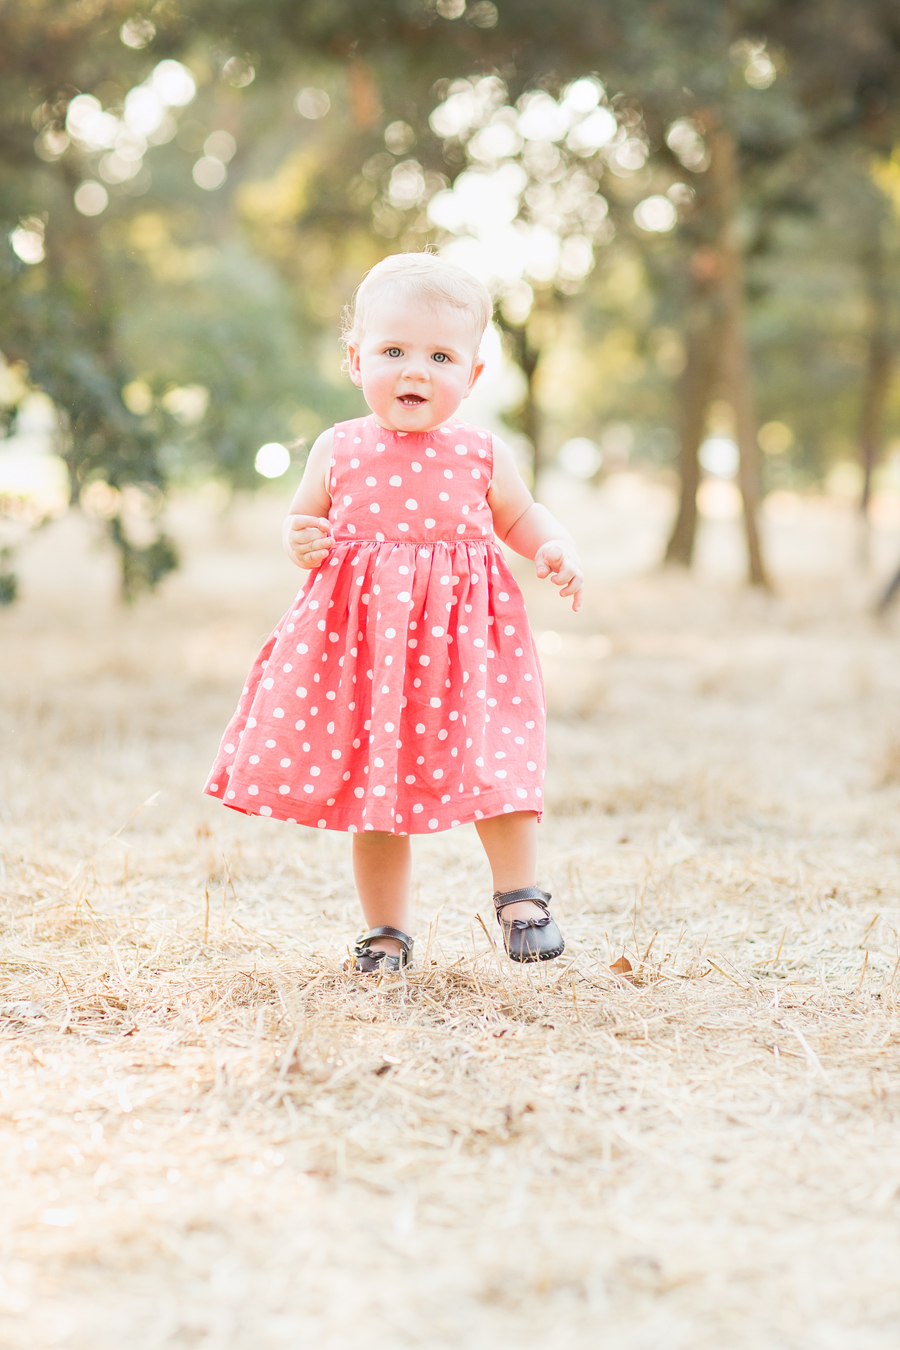 Hattie 1 Year Lens Daisy Photography California Central Valley Childrens Photography3